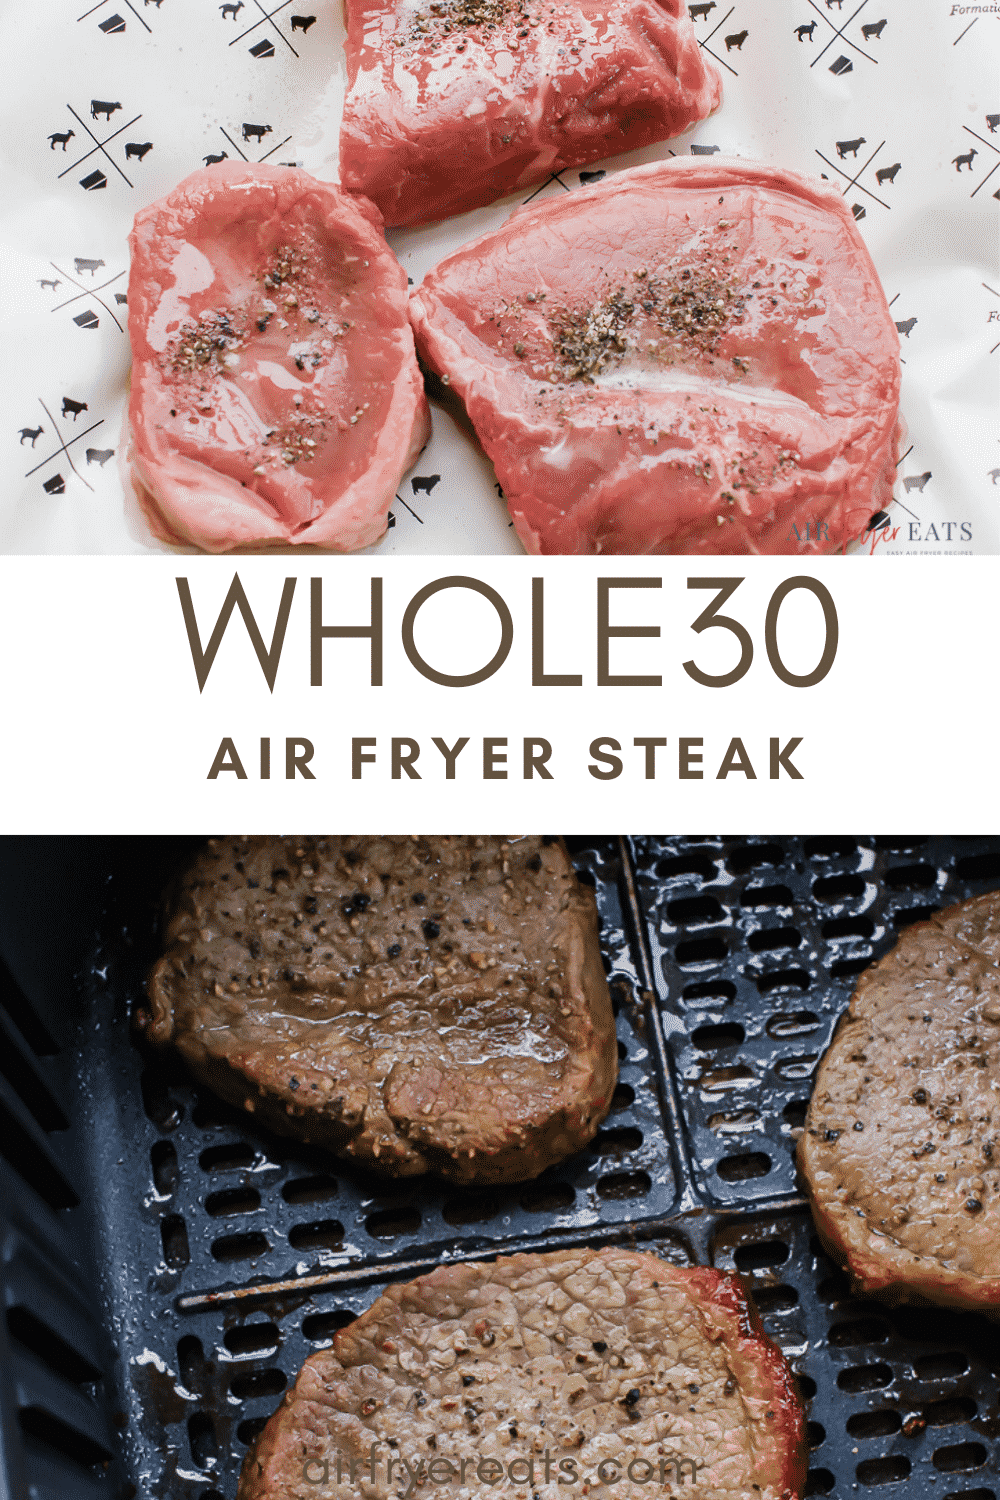 What's more satisfying than a perfectly cooked steak made right in your own kitchen? You'll go crazy for this easy 10 minute air fryer steak recipe! #airfryersteak #airfryer via @vegetarianmamma